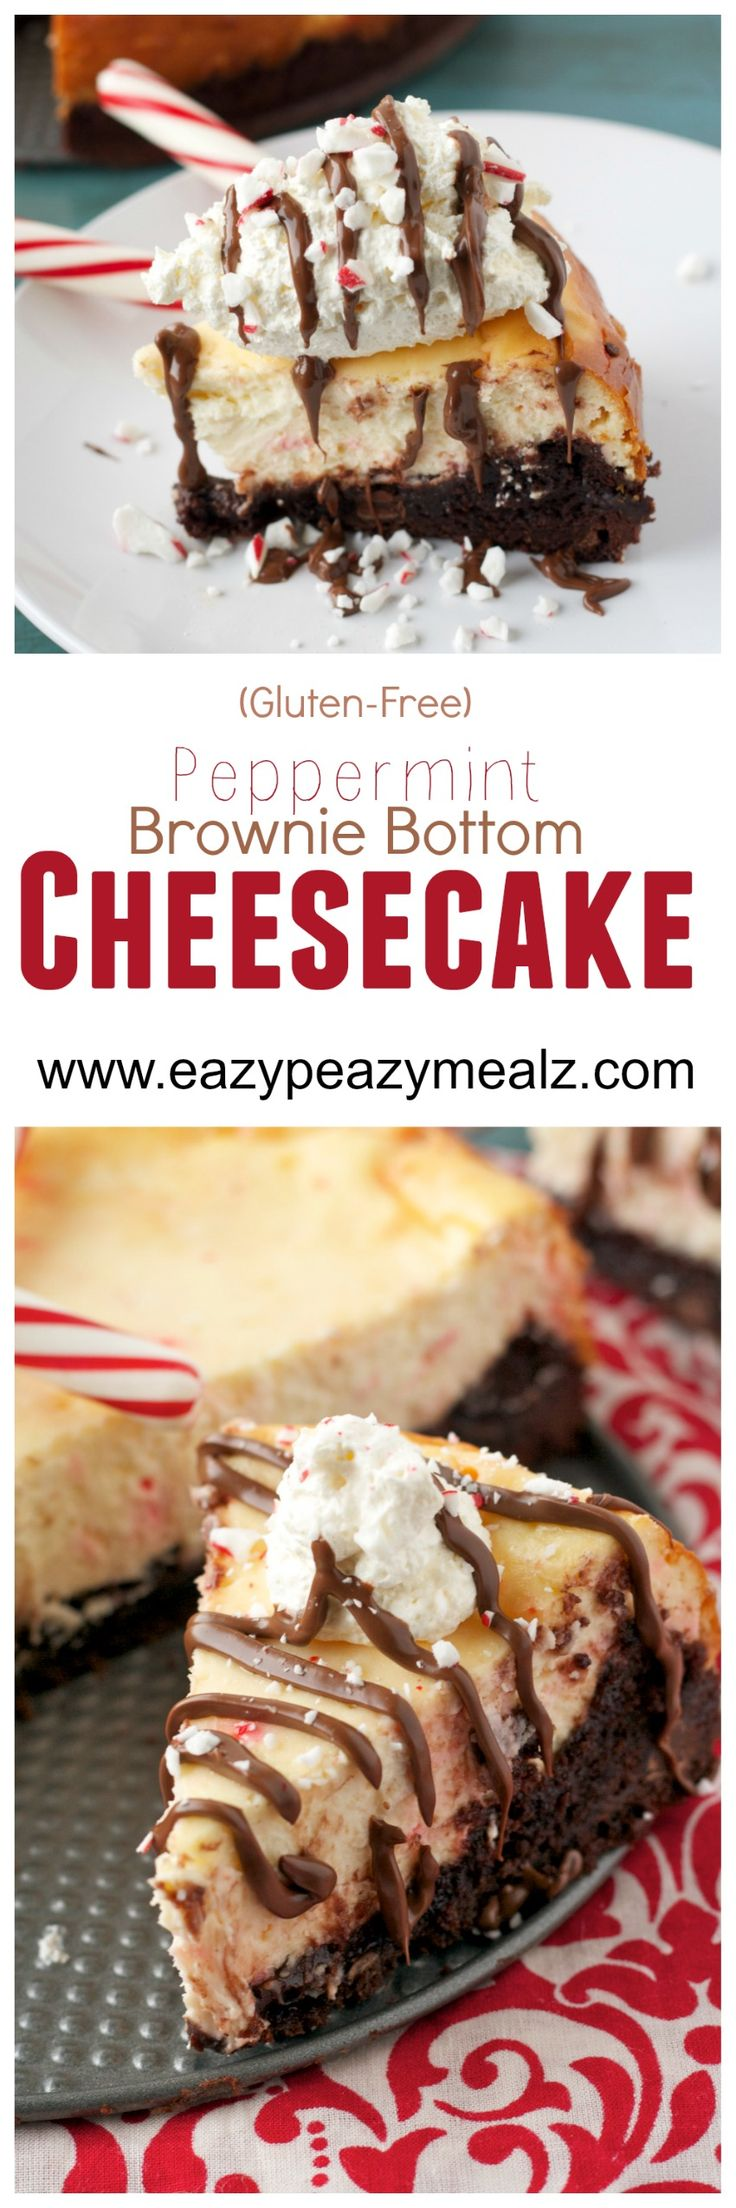 Easy Gluten-Free Peppermint Brownie Bottom Cheesecake: This is the easiest cheesecake to make! And tastes seriously amazing. Perfect for Valentine's Day! - Eazy Peazy Mealz